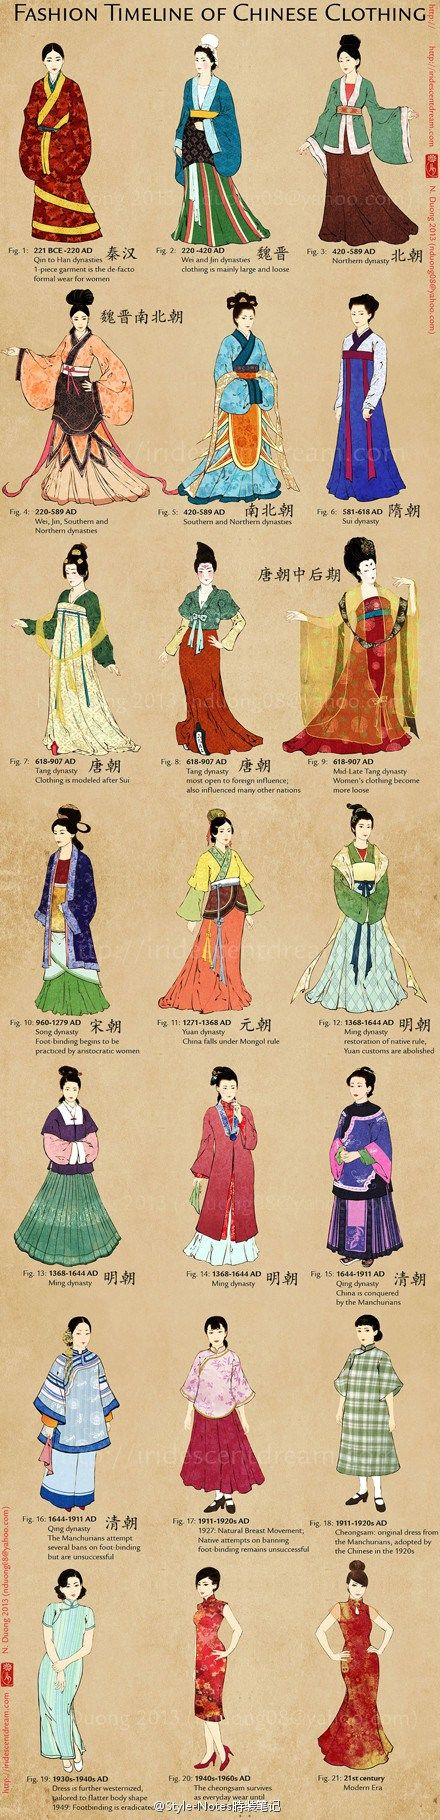 Fashion timeline for Chinese clothing! ^^